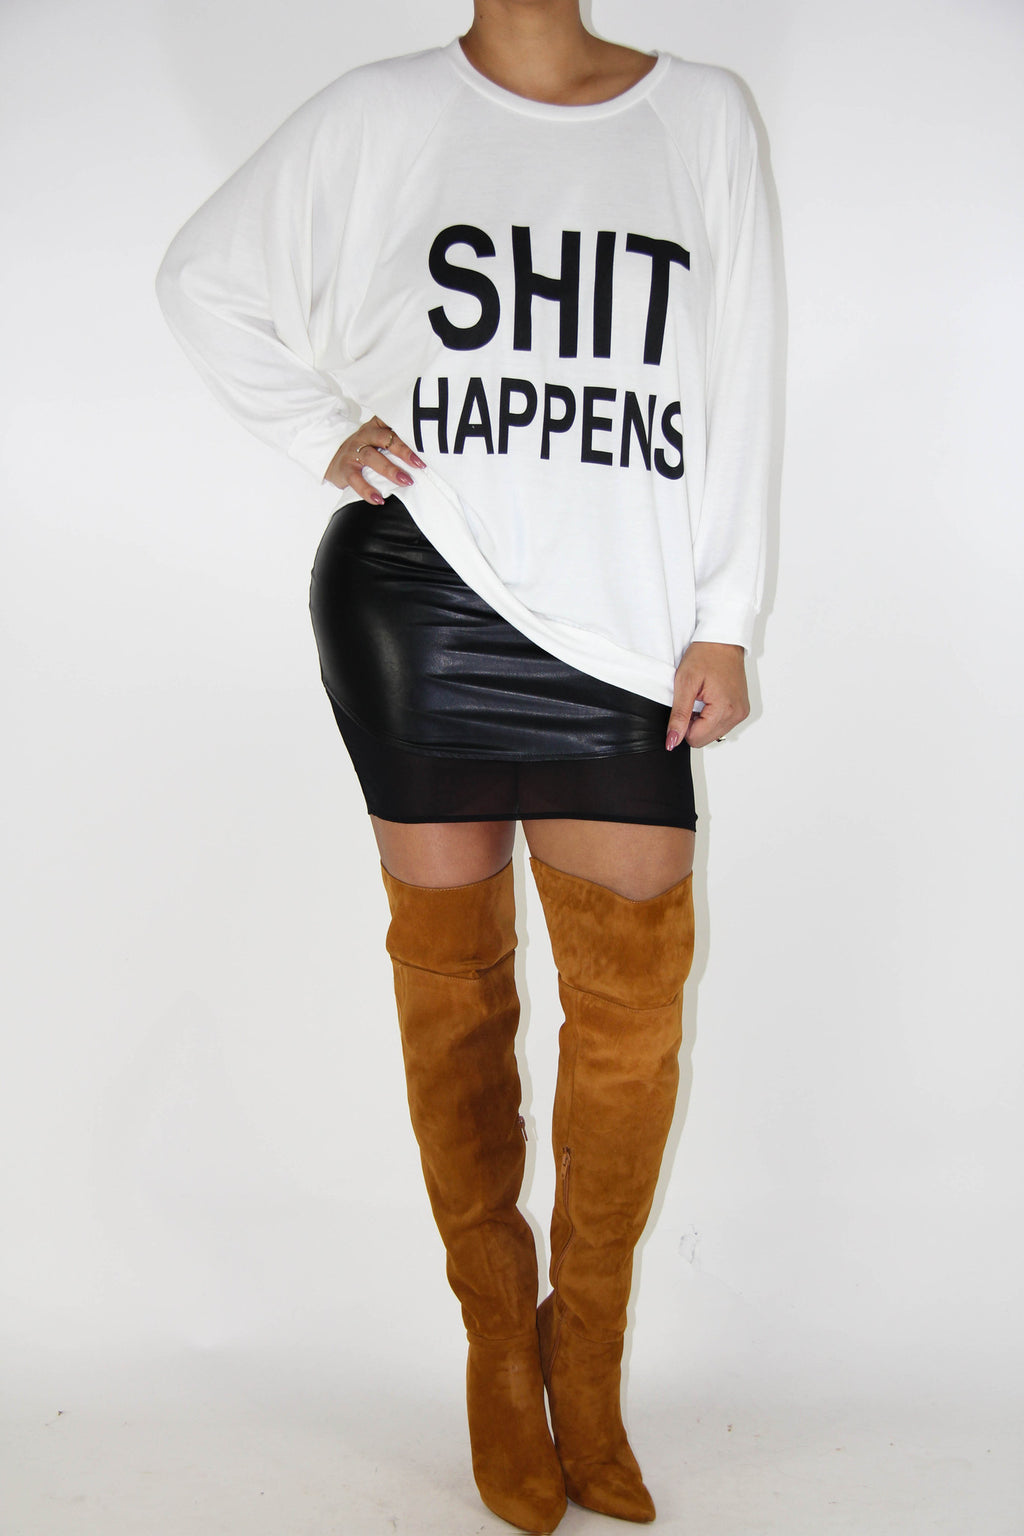 Shit Happens! Sweatshirt, Tops - Style Dirty